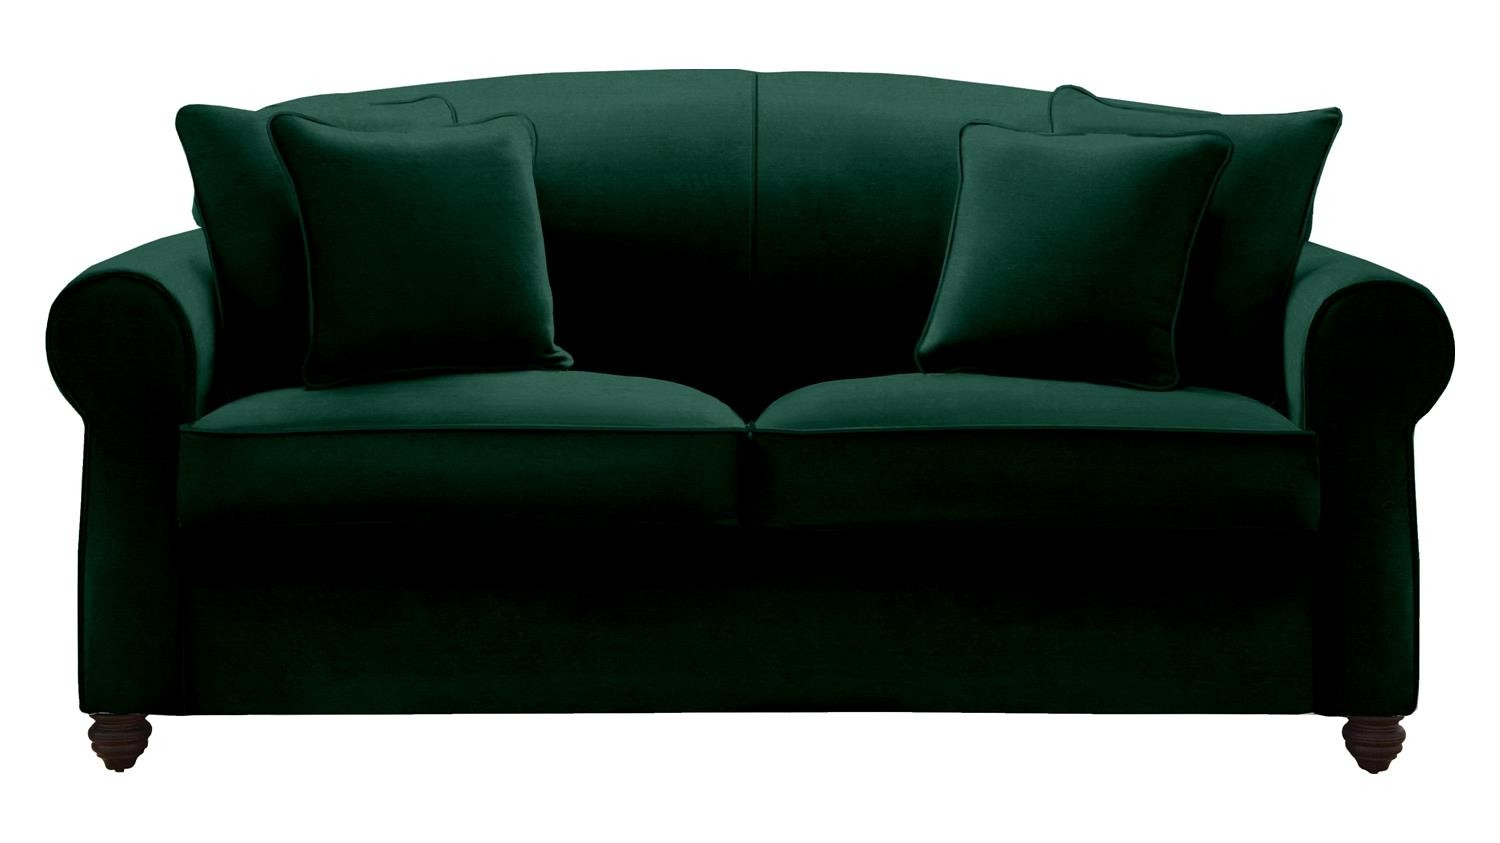 The Chilmark 3 Seater Sofa Bed